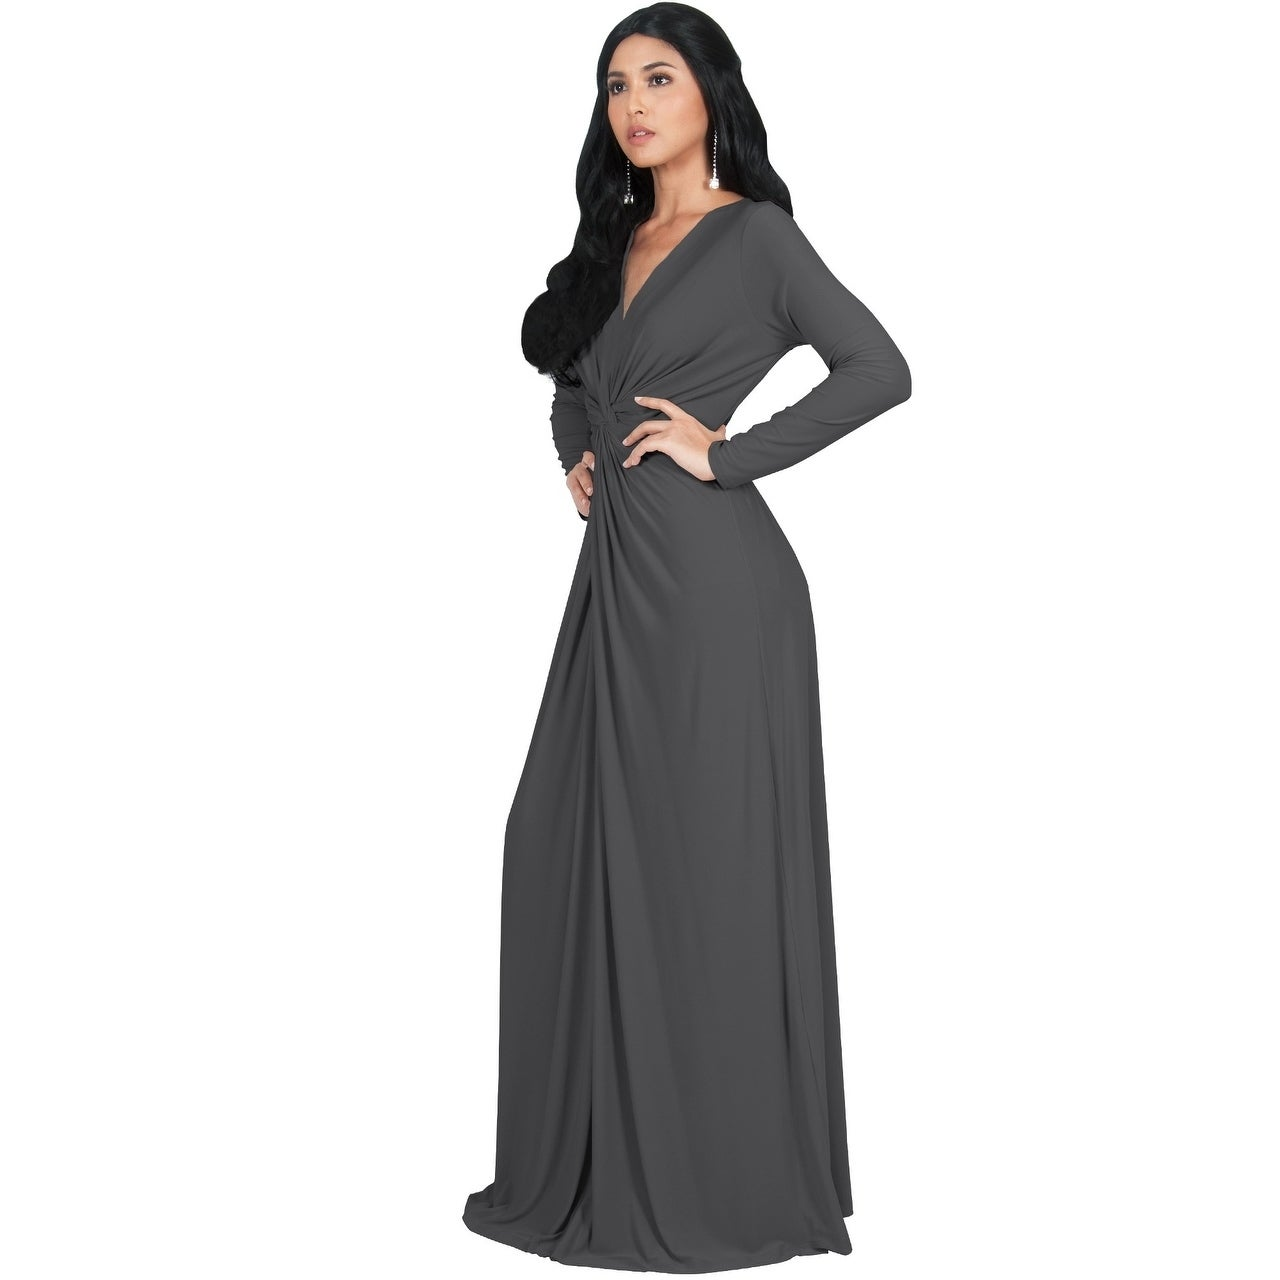 2977f0ed58850f Shop KOH KOH Womens Semi Formal Flowy Fall Long Sleeve Gowns Maxi Dresses -  Free Shipping Today - Overstock - 13285964